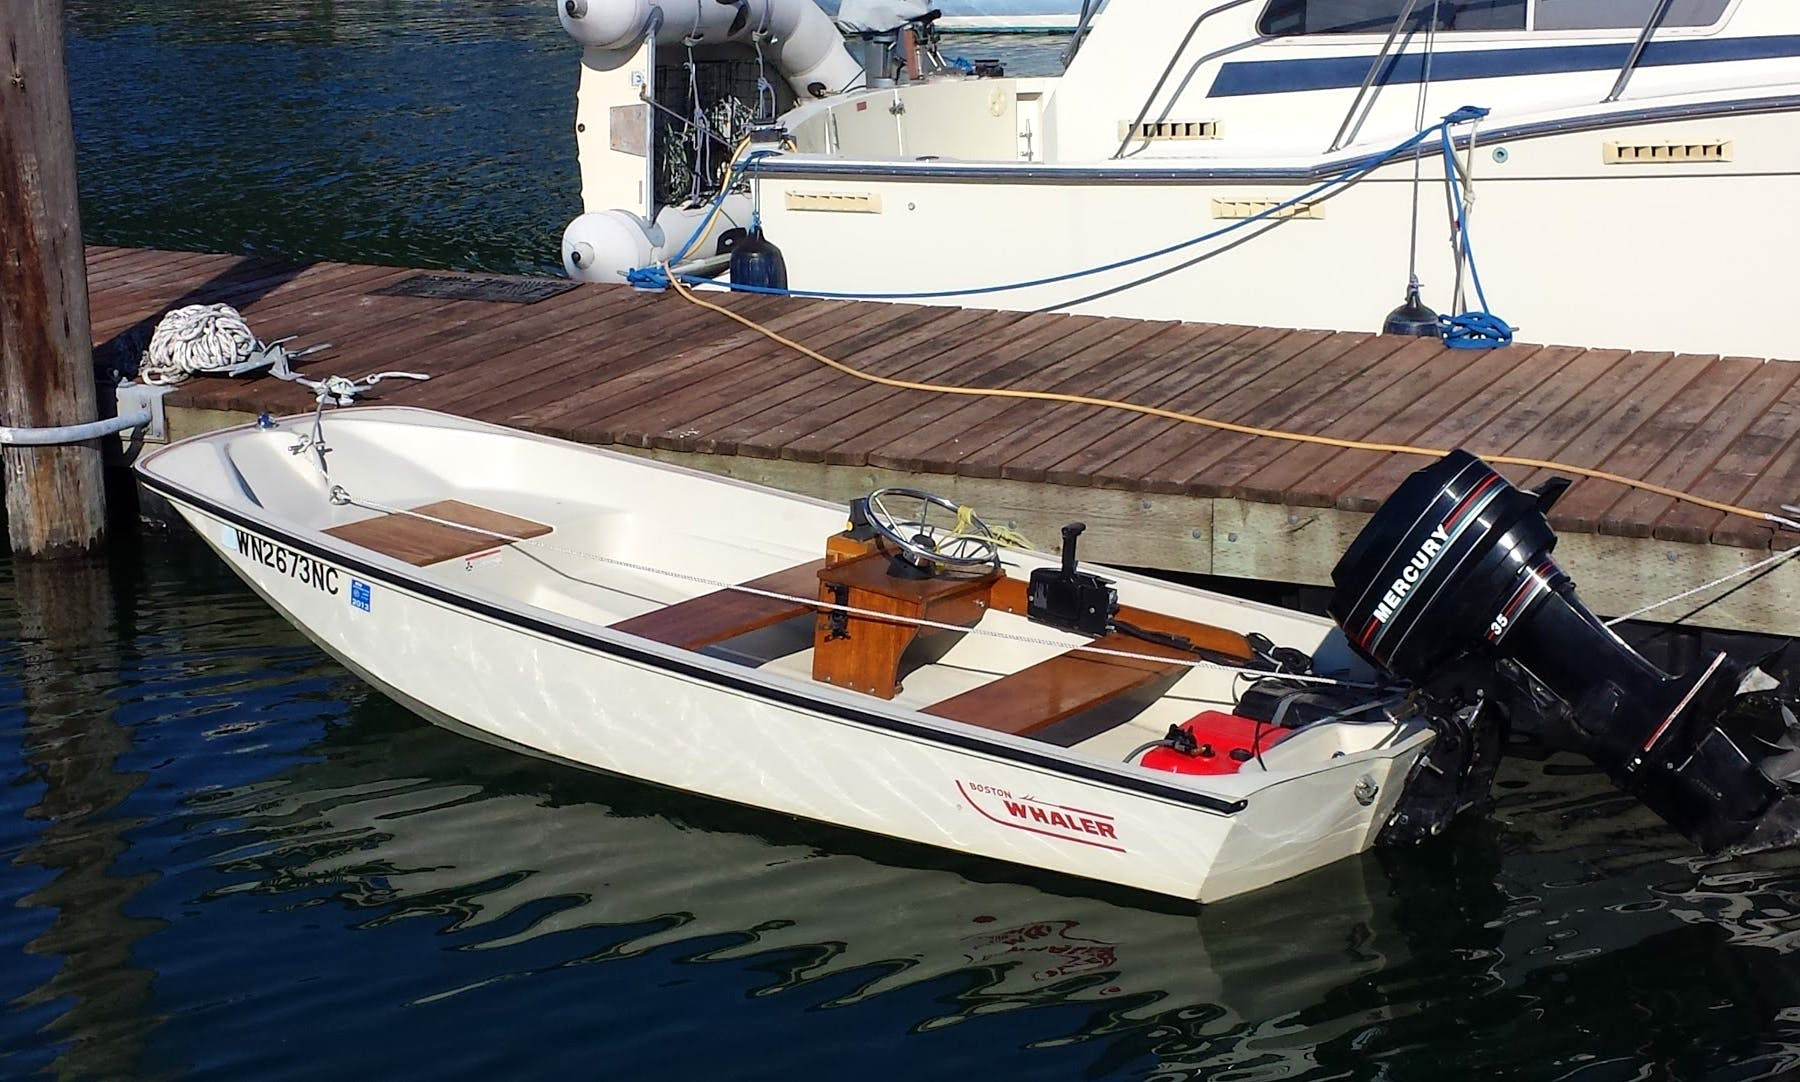 Classic 13' Boston Whaler for rent in Freeland